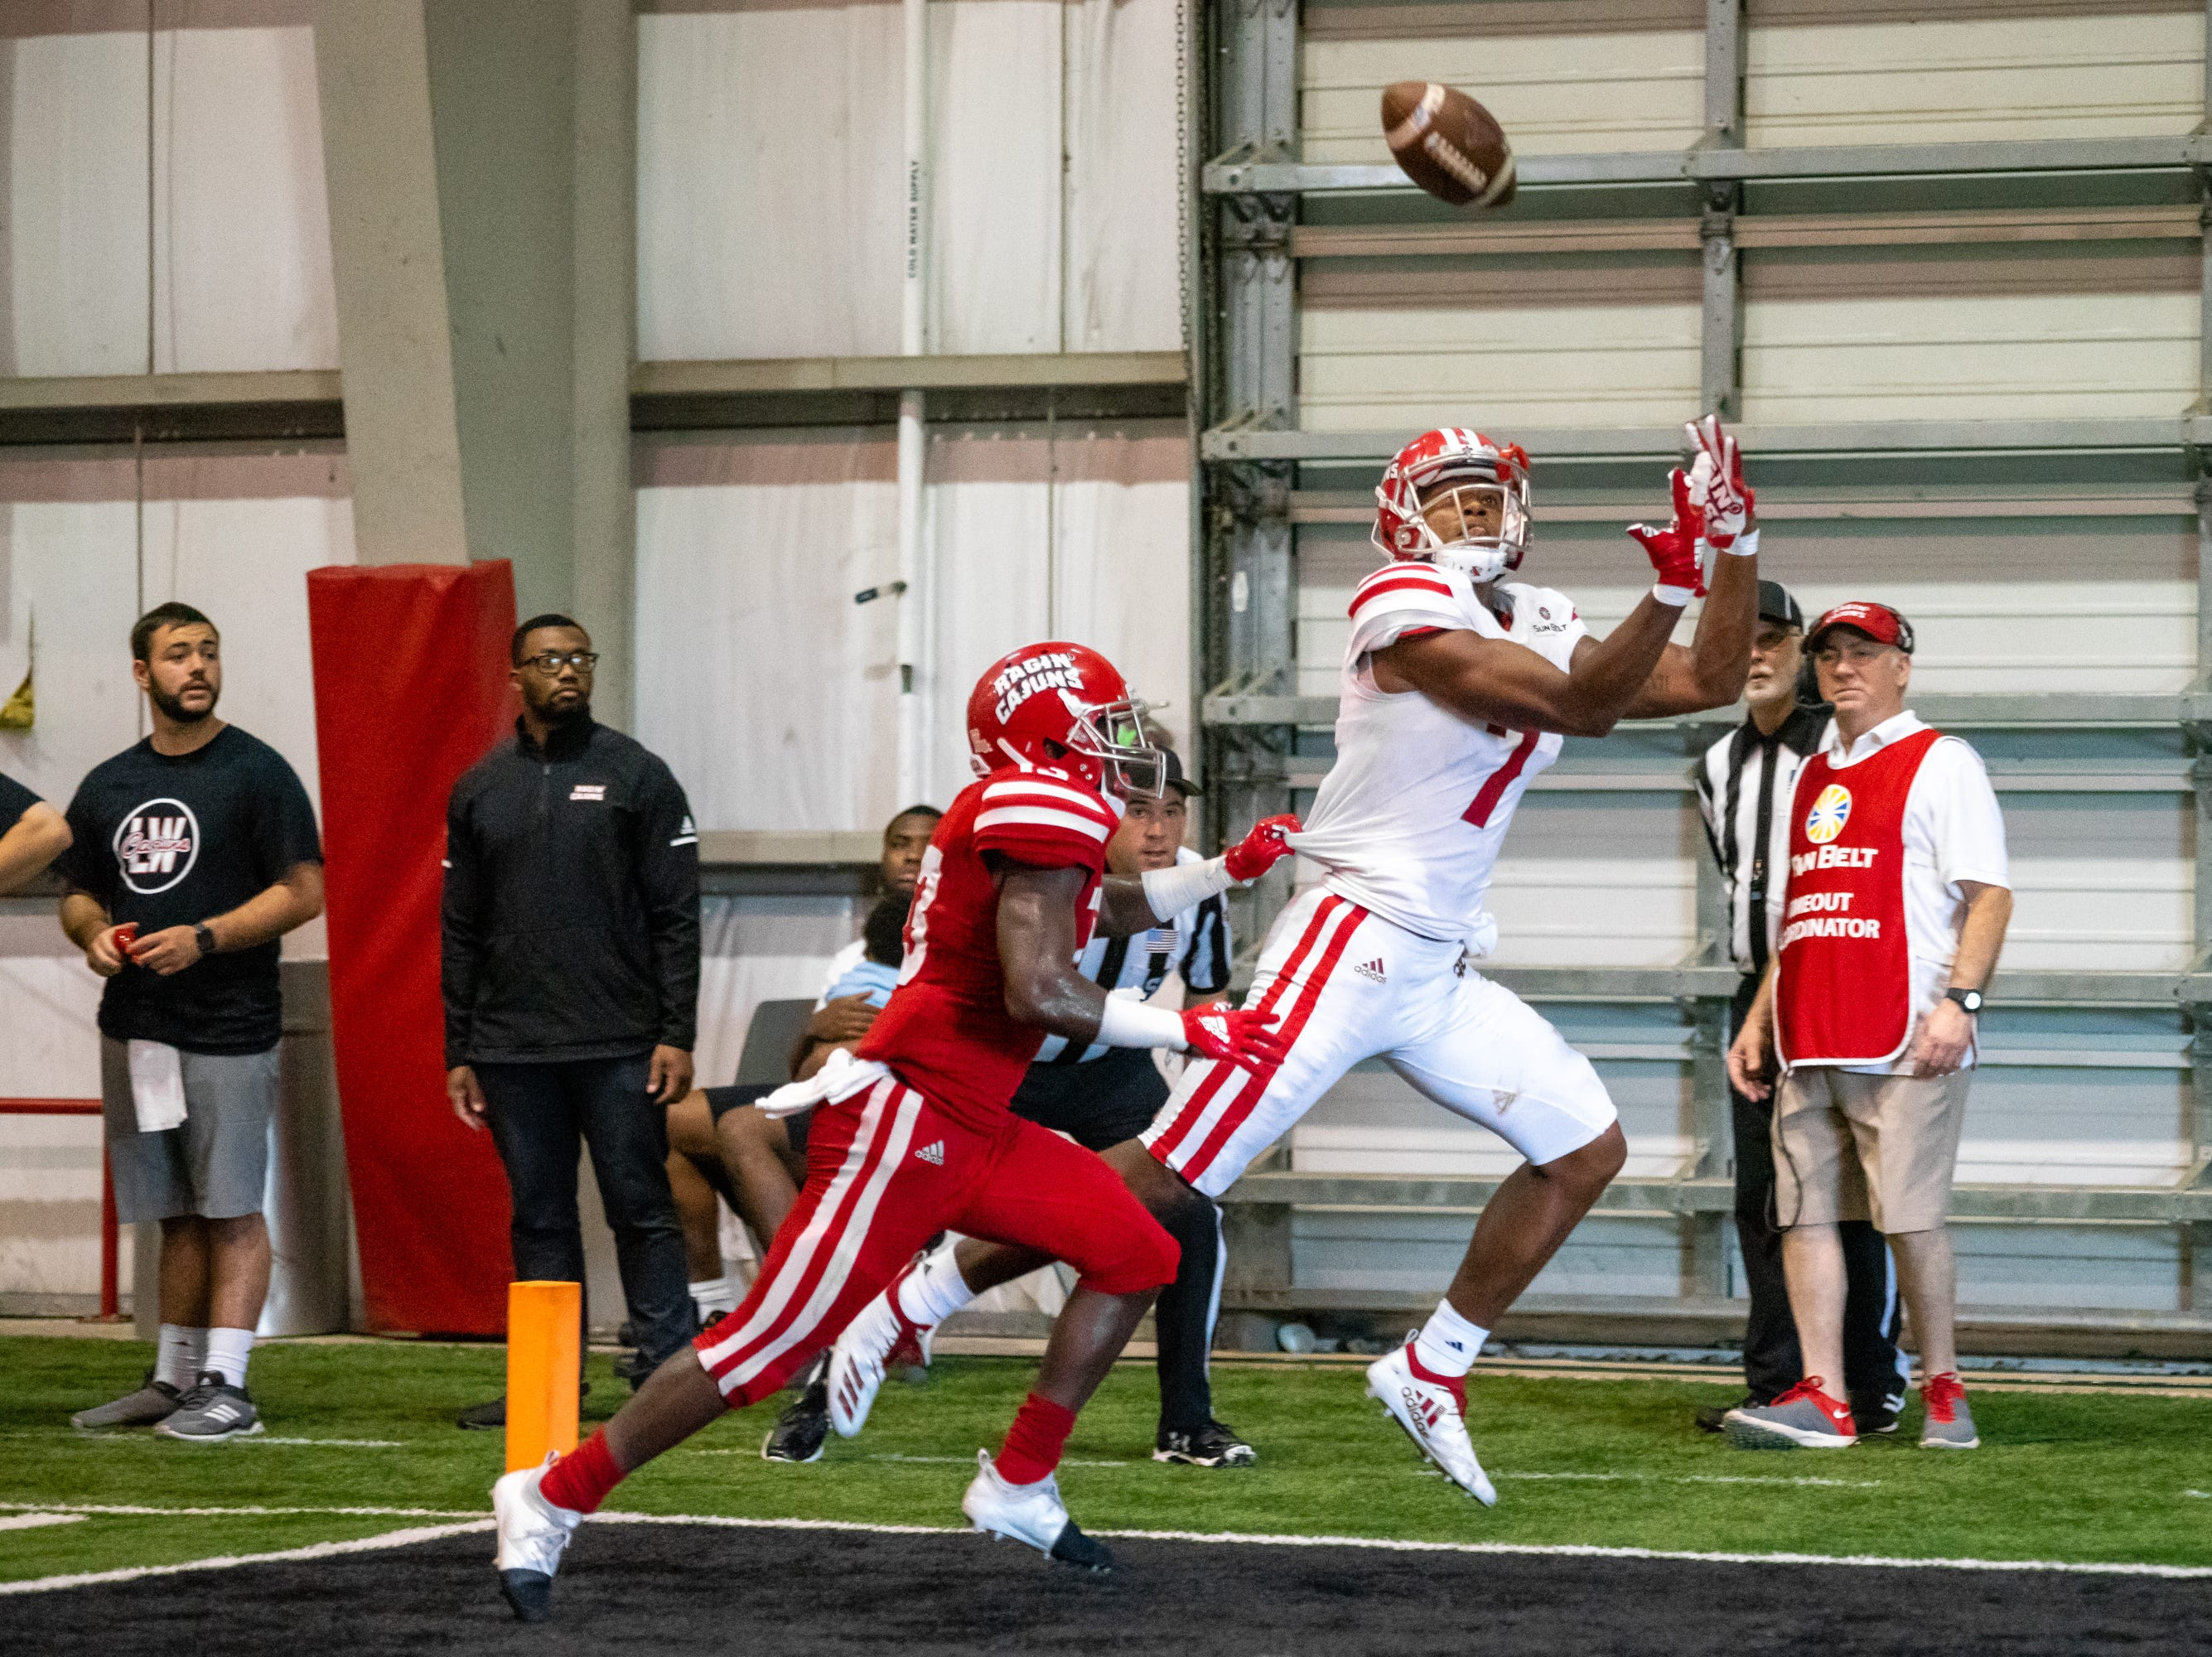 UL's Brian Smith catches the ball in the endzone to score as the Ragin' Cajuns football team plays their annual Spring football game against one another in the Leon Moncla trainig facility on April 13, 2019.